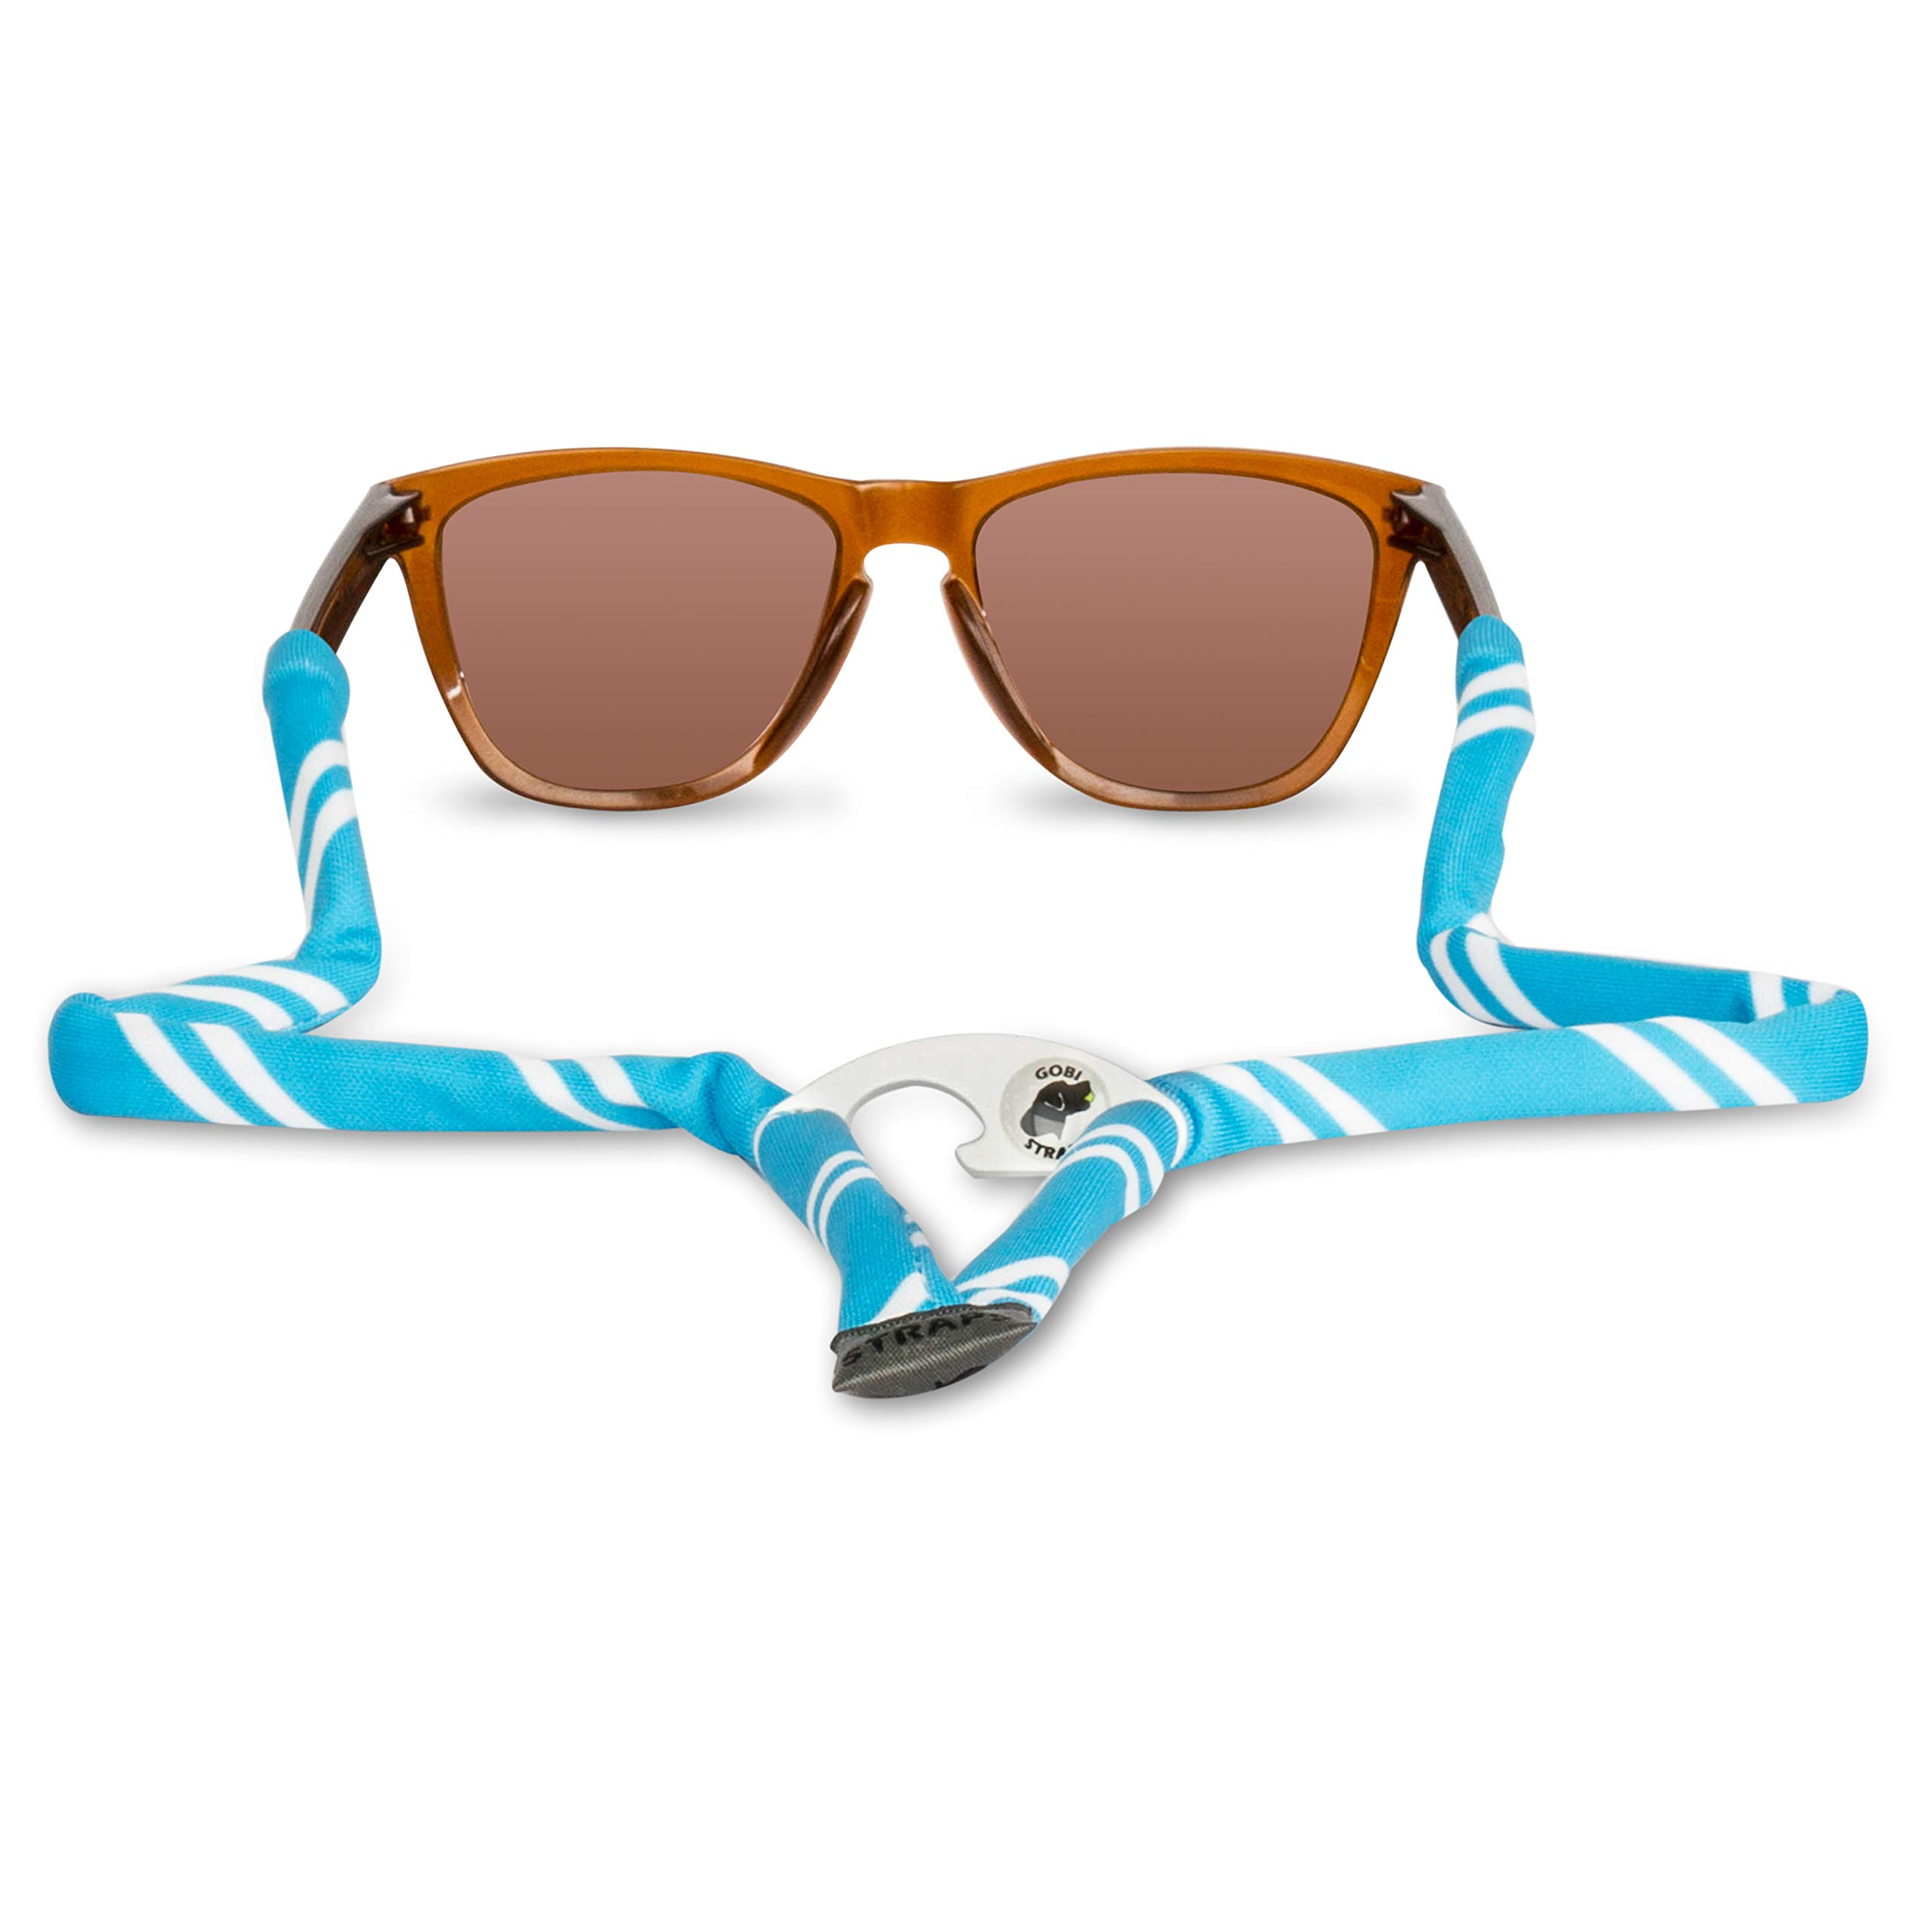 Gobi Straps Sunglass Straps Built-in Bottle Opener | Sunglass Retainers, Sunglass Lanyard, Sunglass Cord | Quick Drying | Powder Blue & White Stripes by Gobi Straps